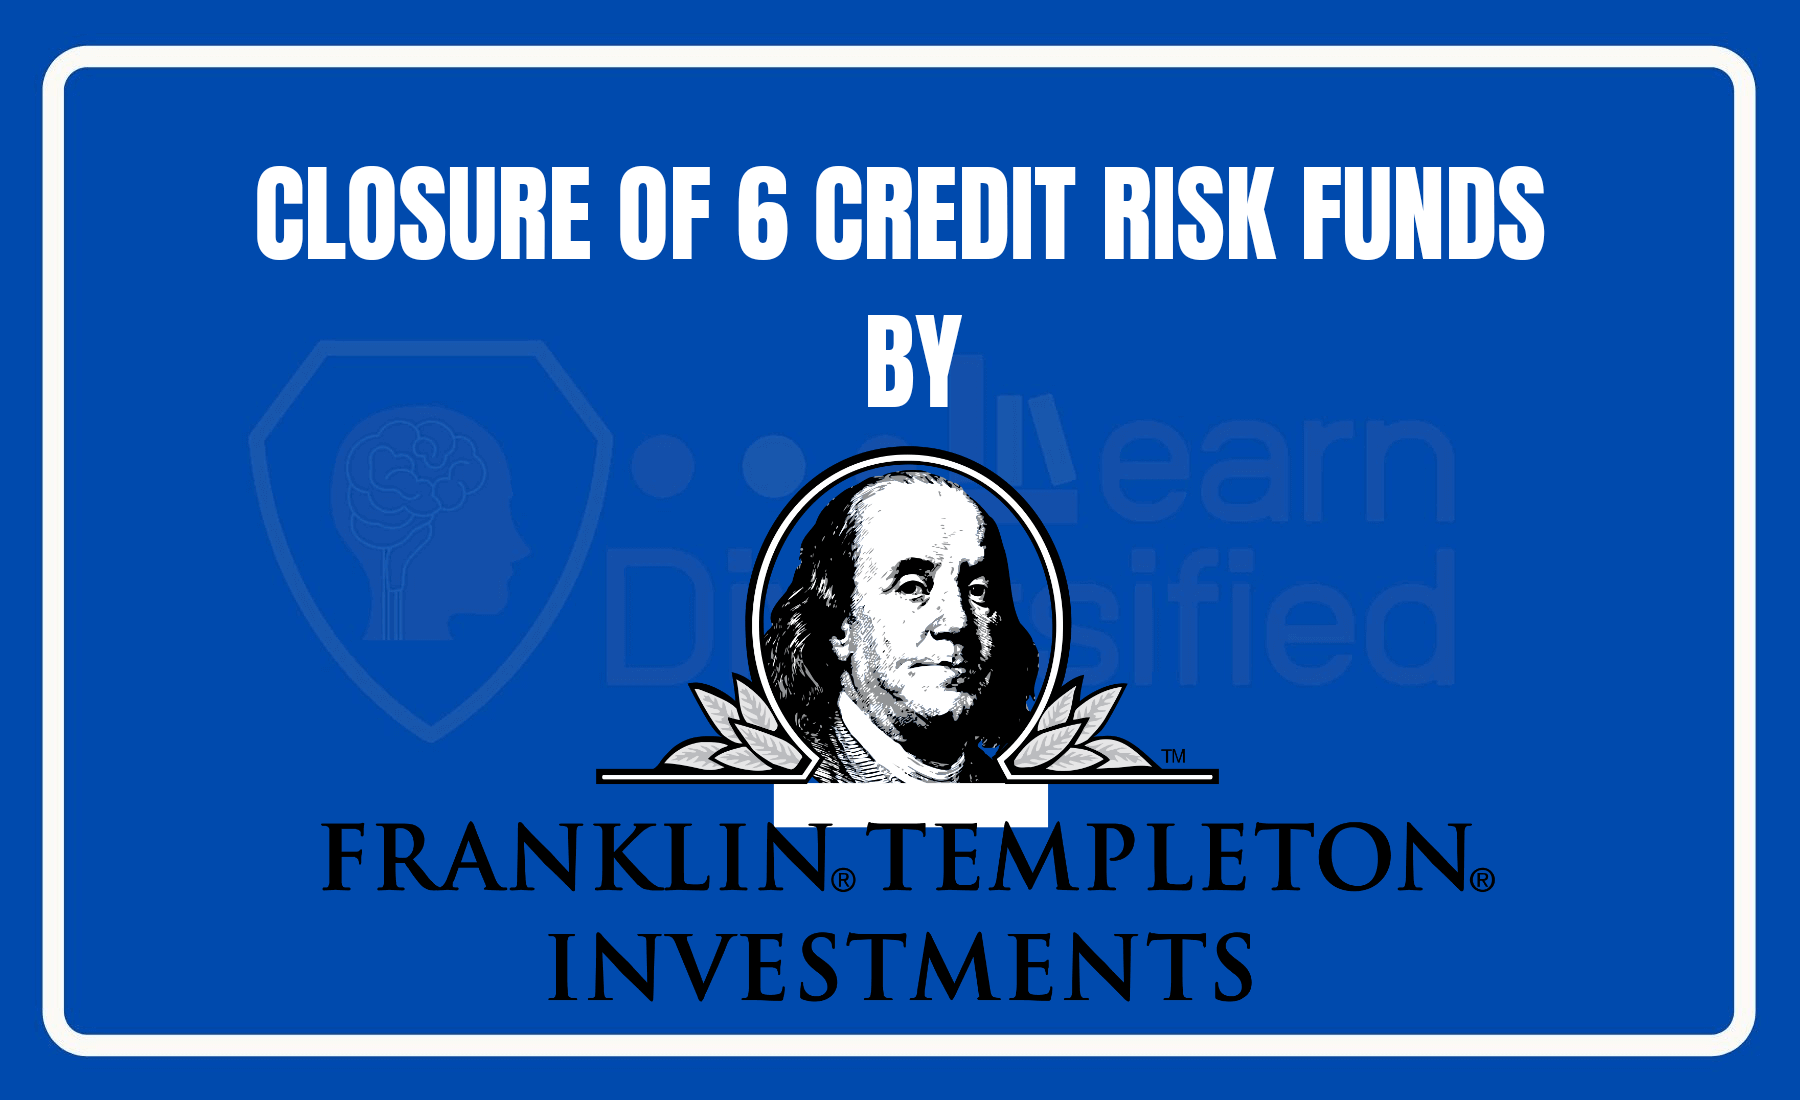 Franklin Templeton winds up 6 credit risk funds